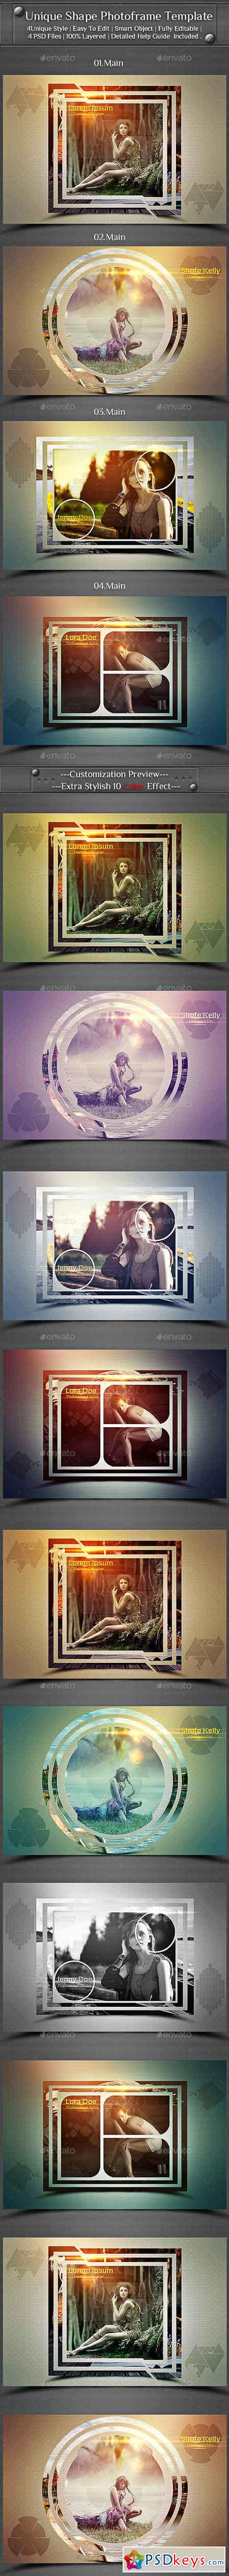 Unique Shape Photo Frame Template 22079345